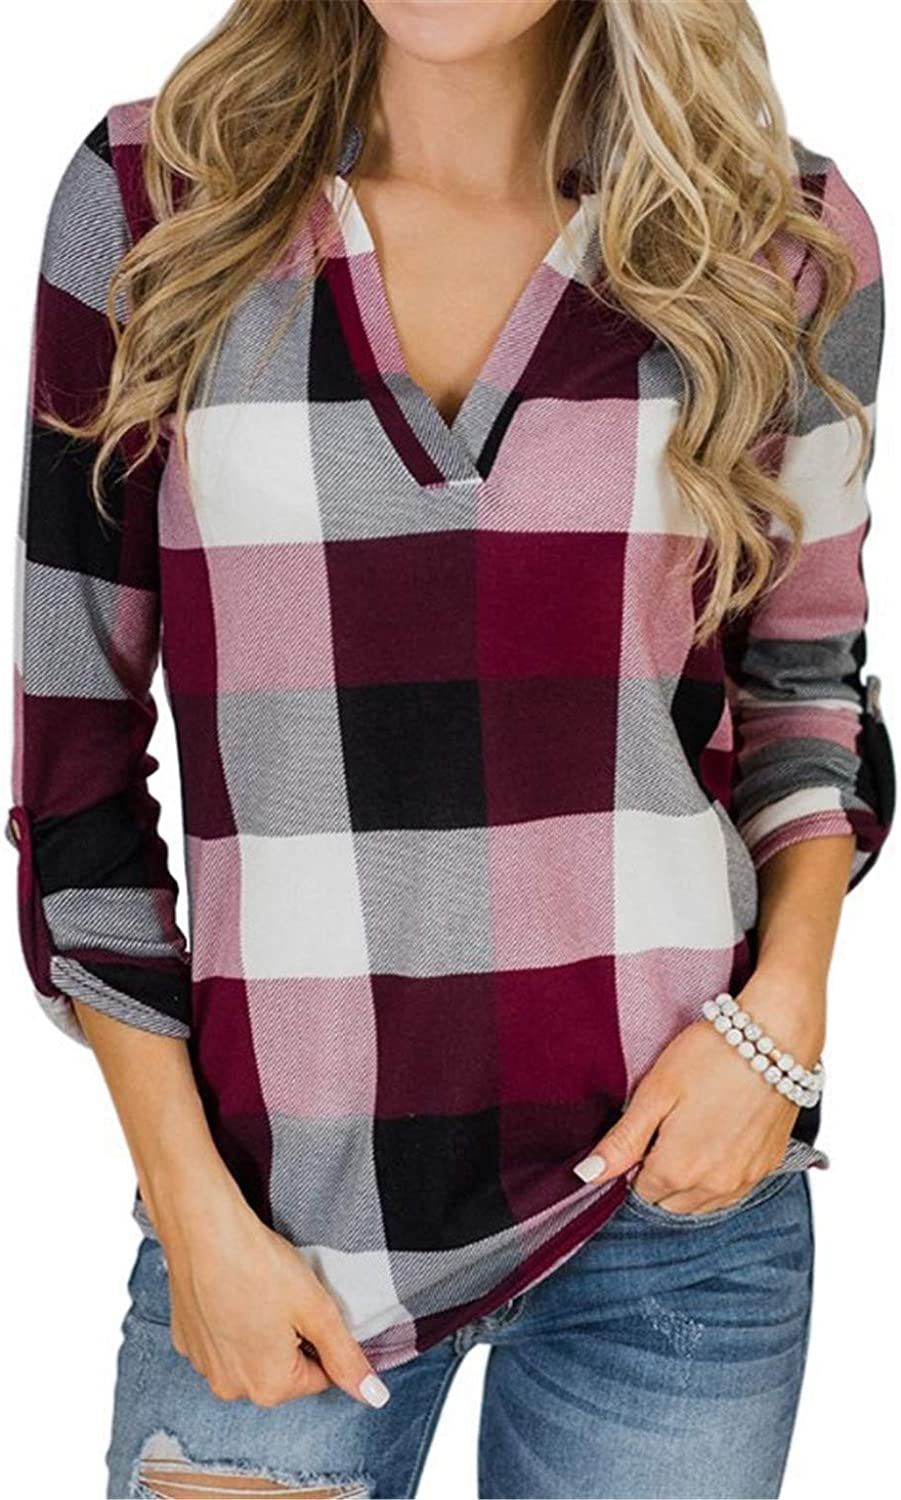 Andongnywell Womens Casual lace Plaid Sleeves 5% OFF Neck Long V Max 71% OFF